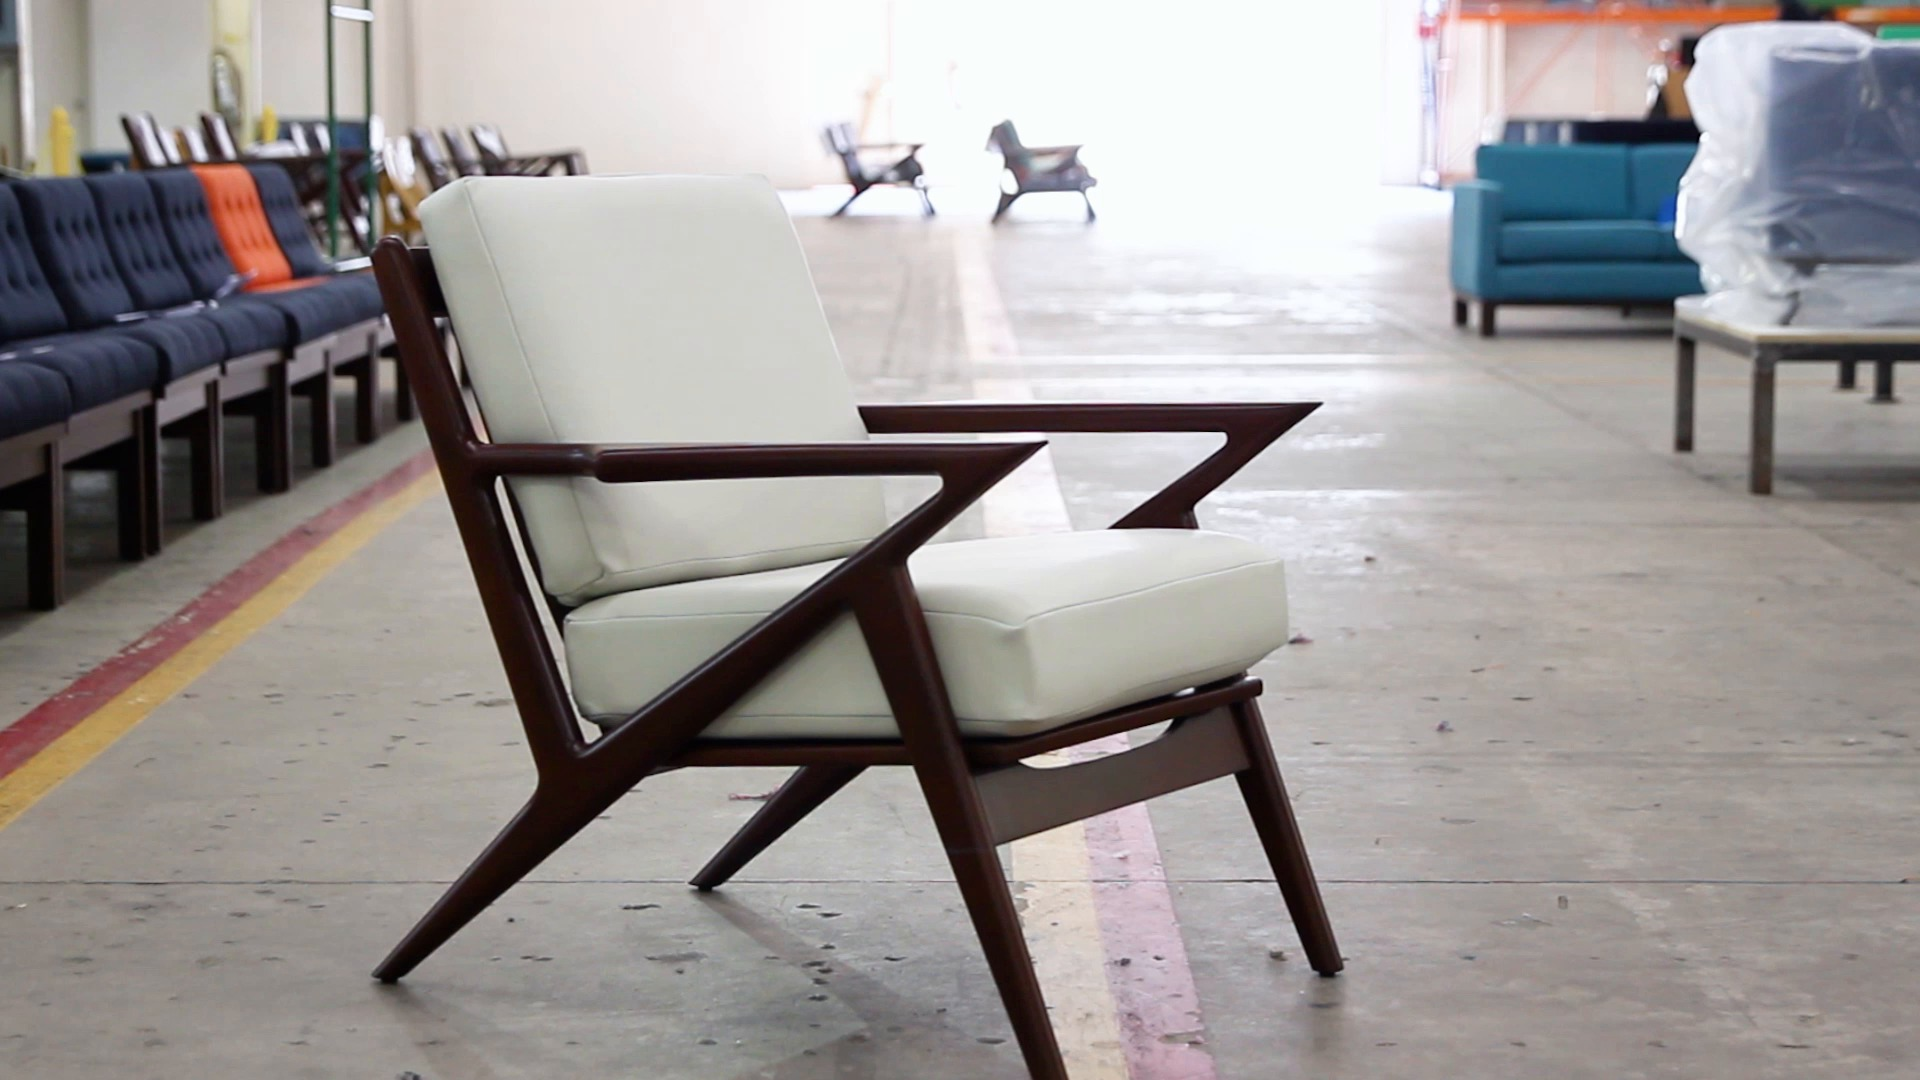 Selig Chair Soto Chair Product Overview 0117 V3